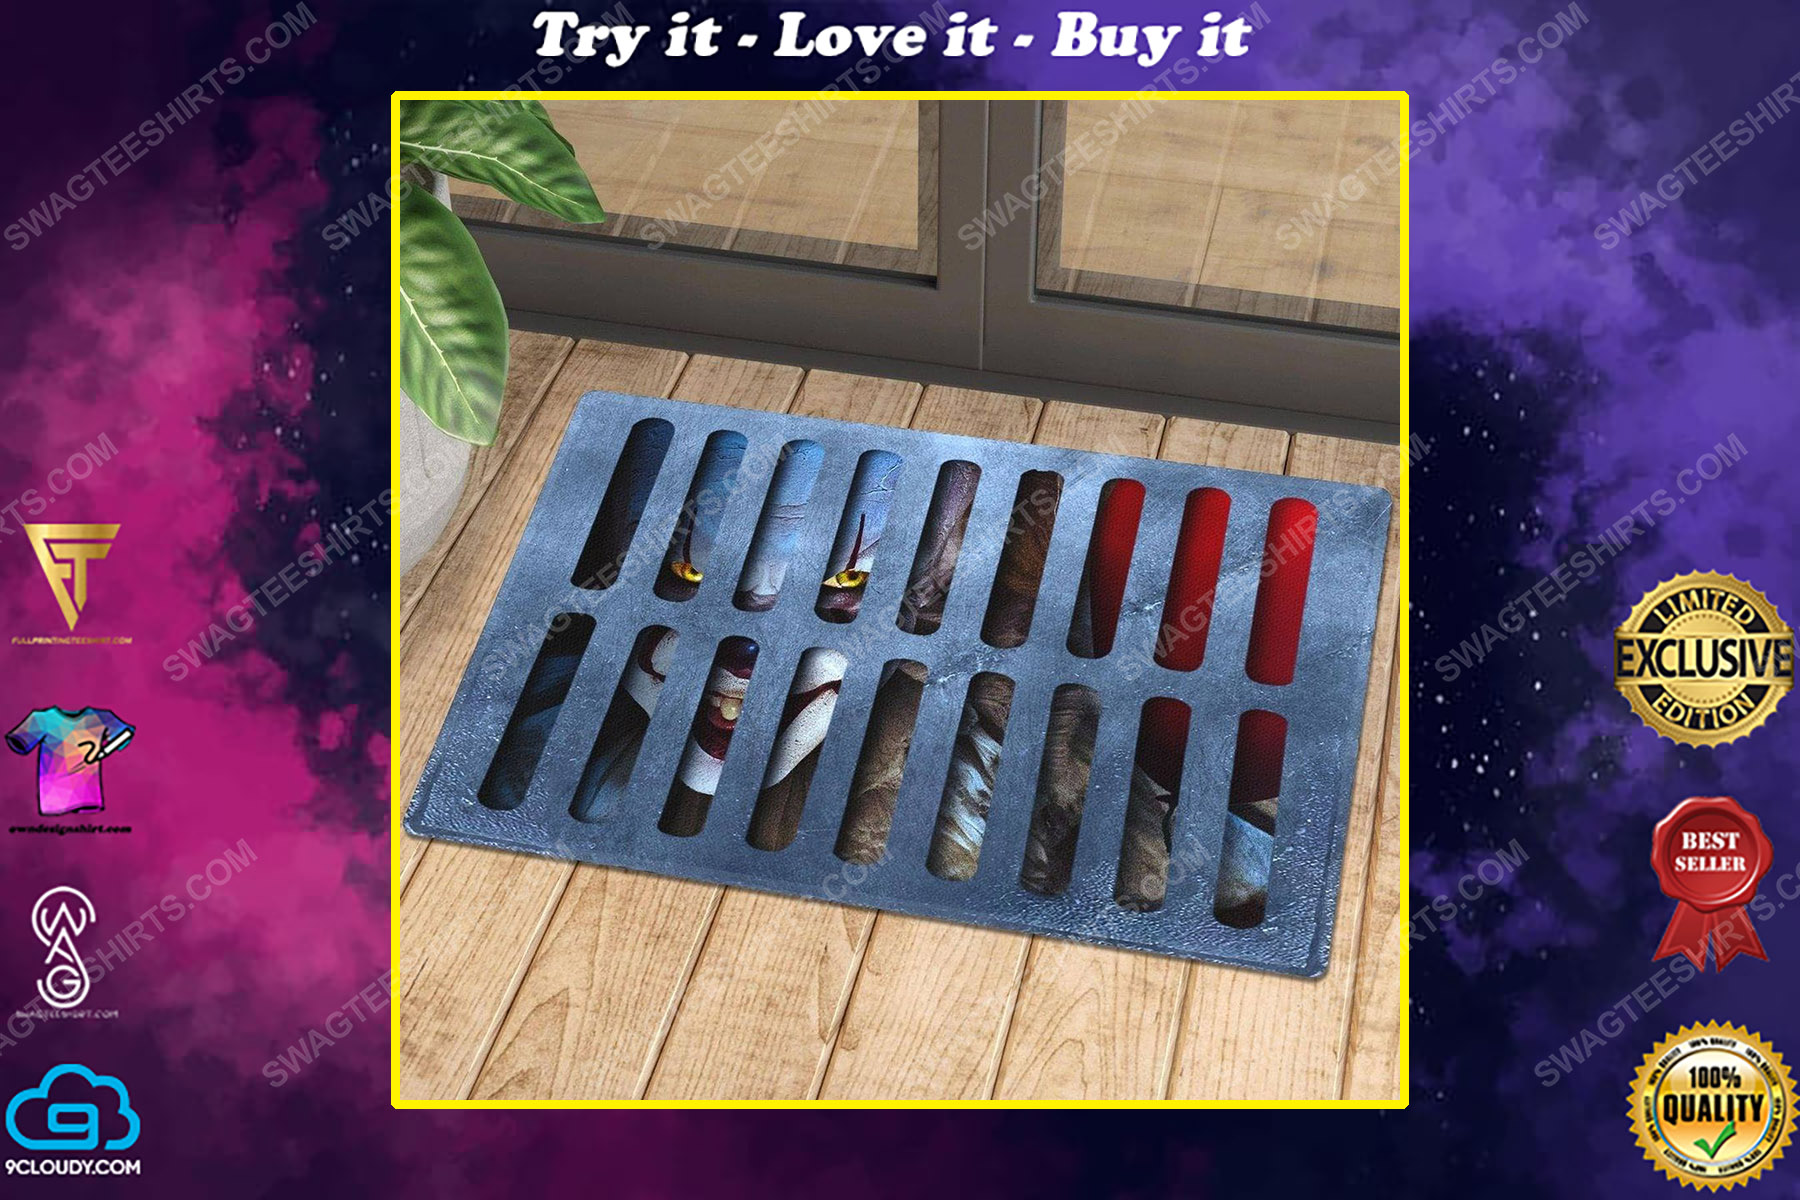 It pennywise horror clown under drain cover doormat